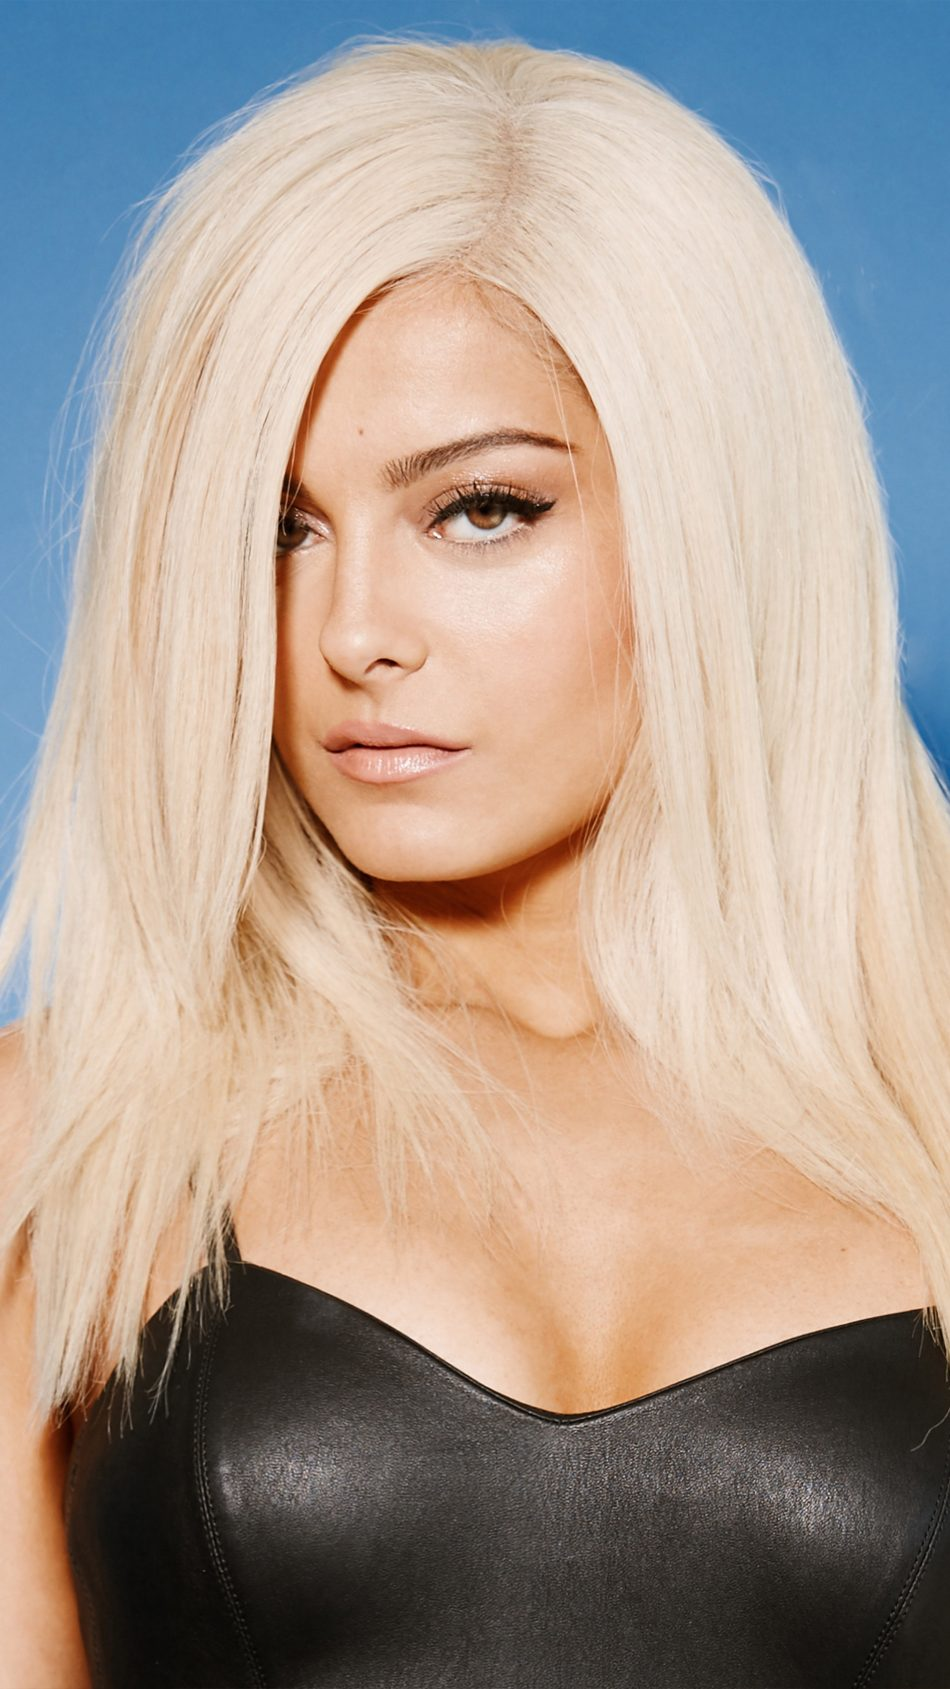 Bebe Rexha iPhone Wallpapers Wallpaper Cave (With images